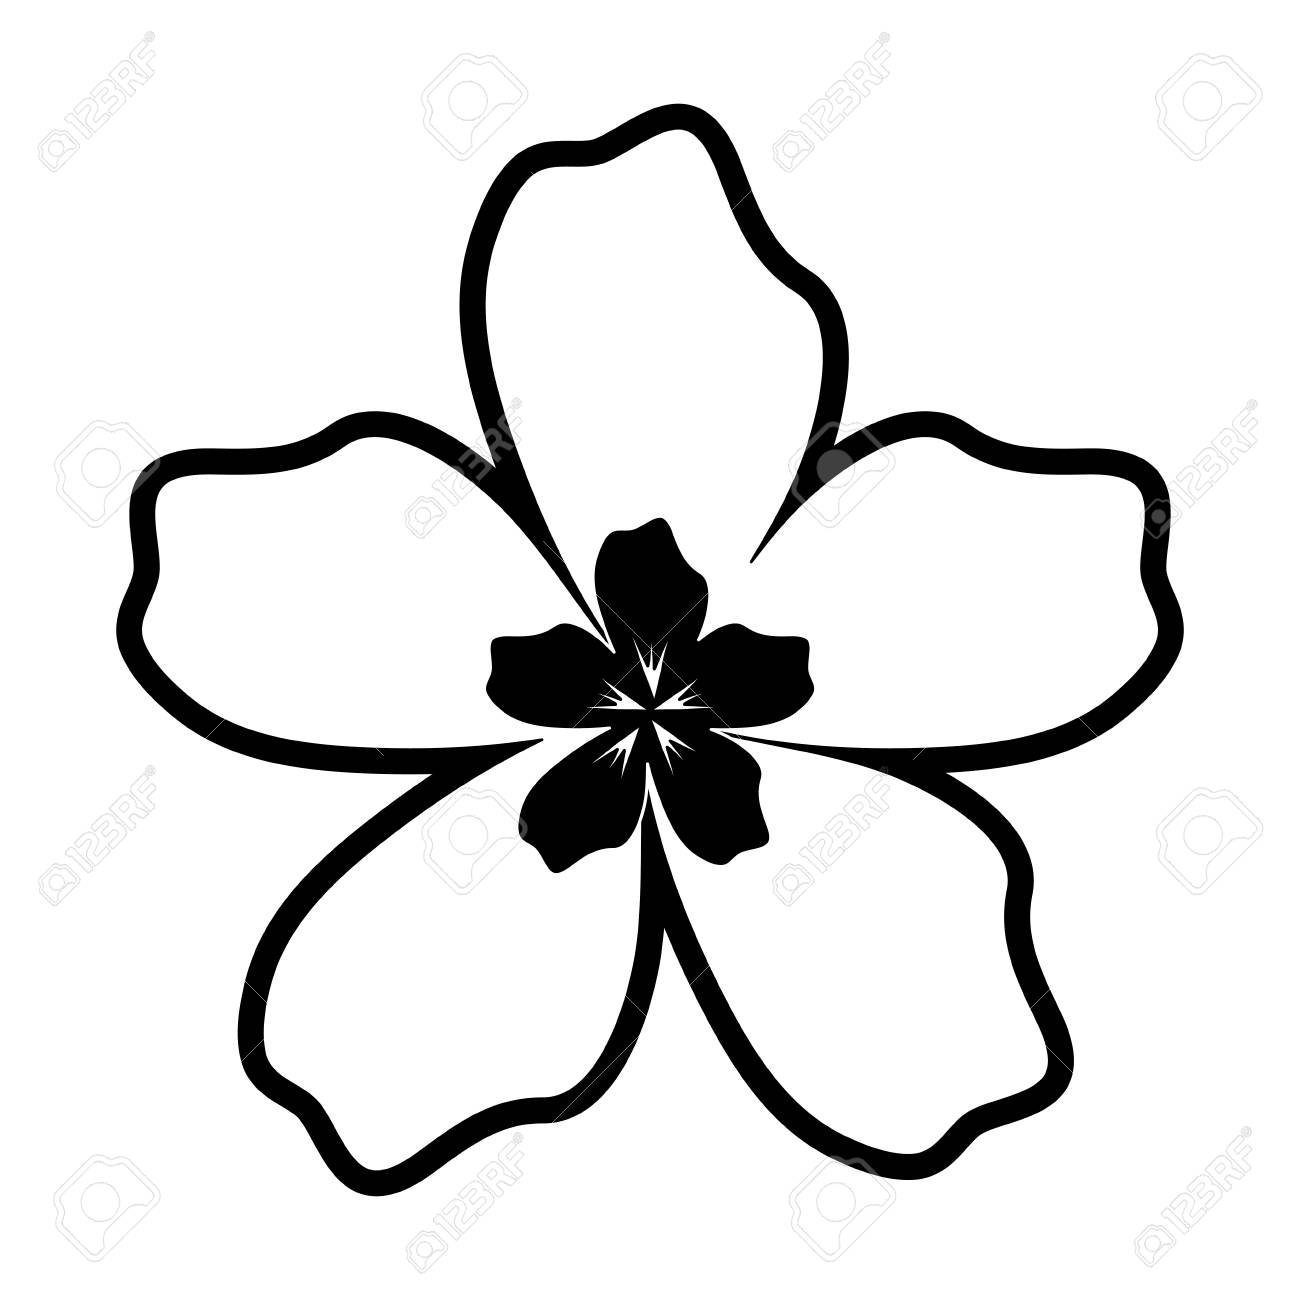 A Flat Line White Flower Of Five Petals With Black Center Vector